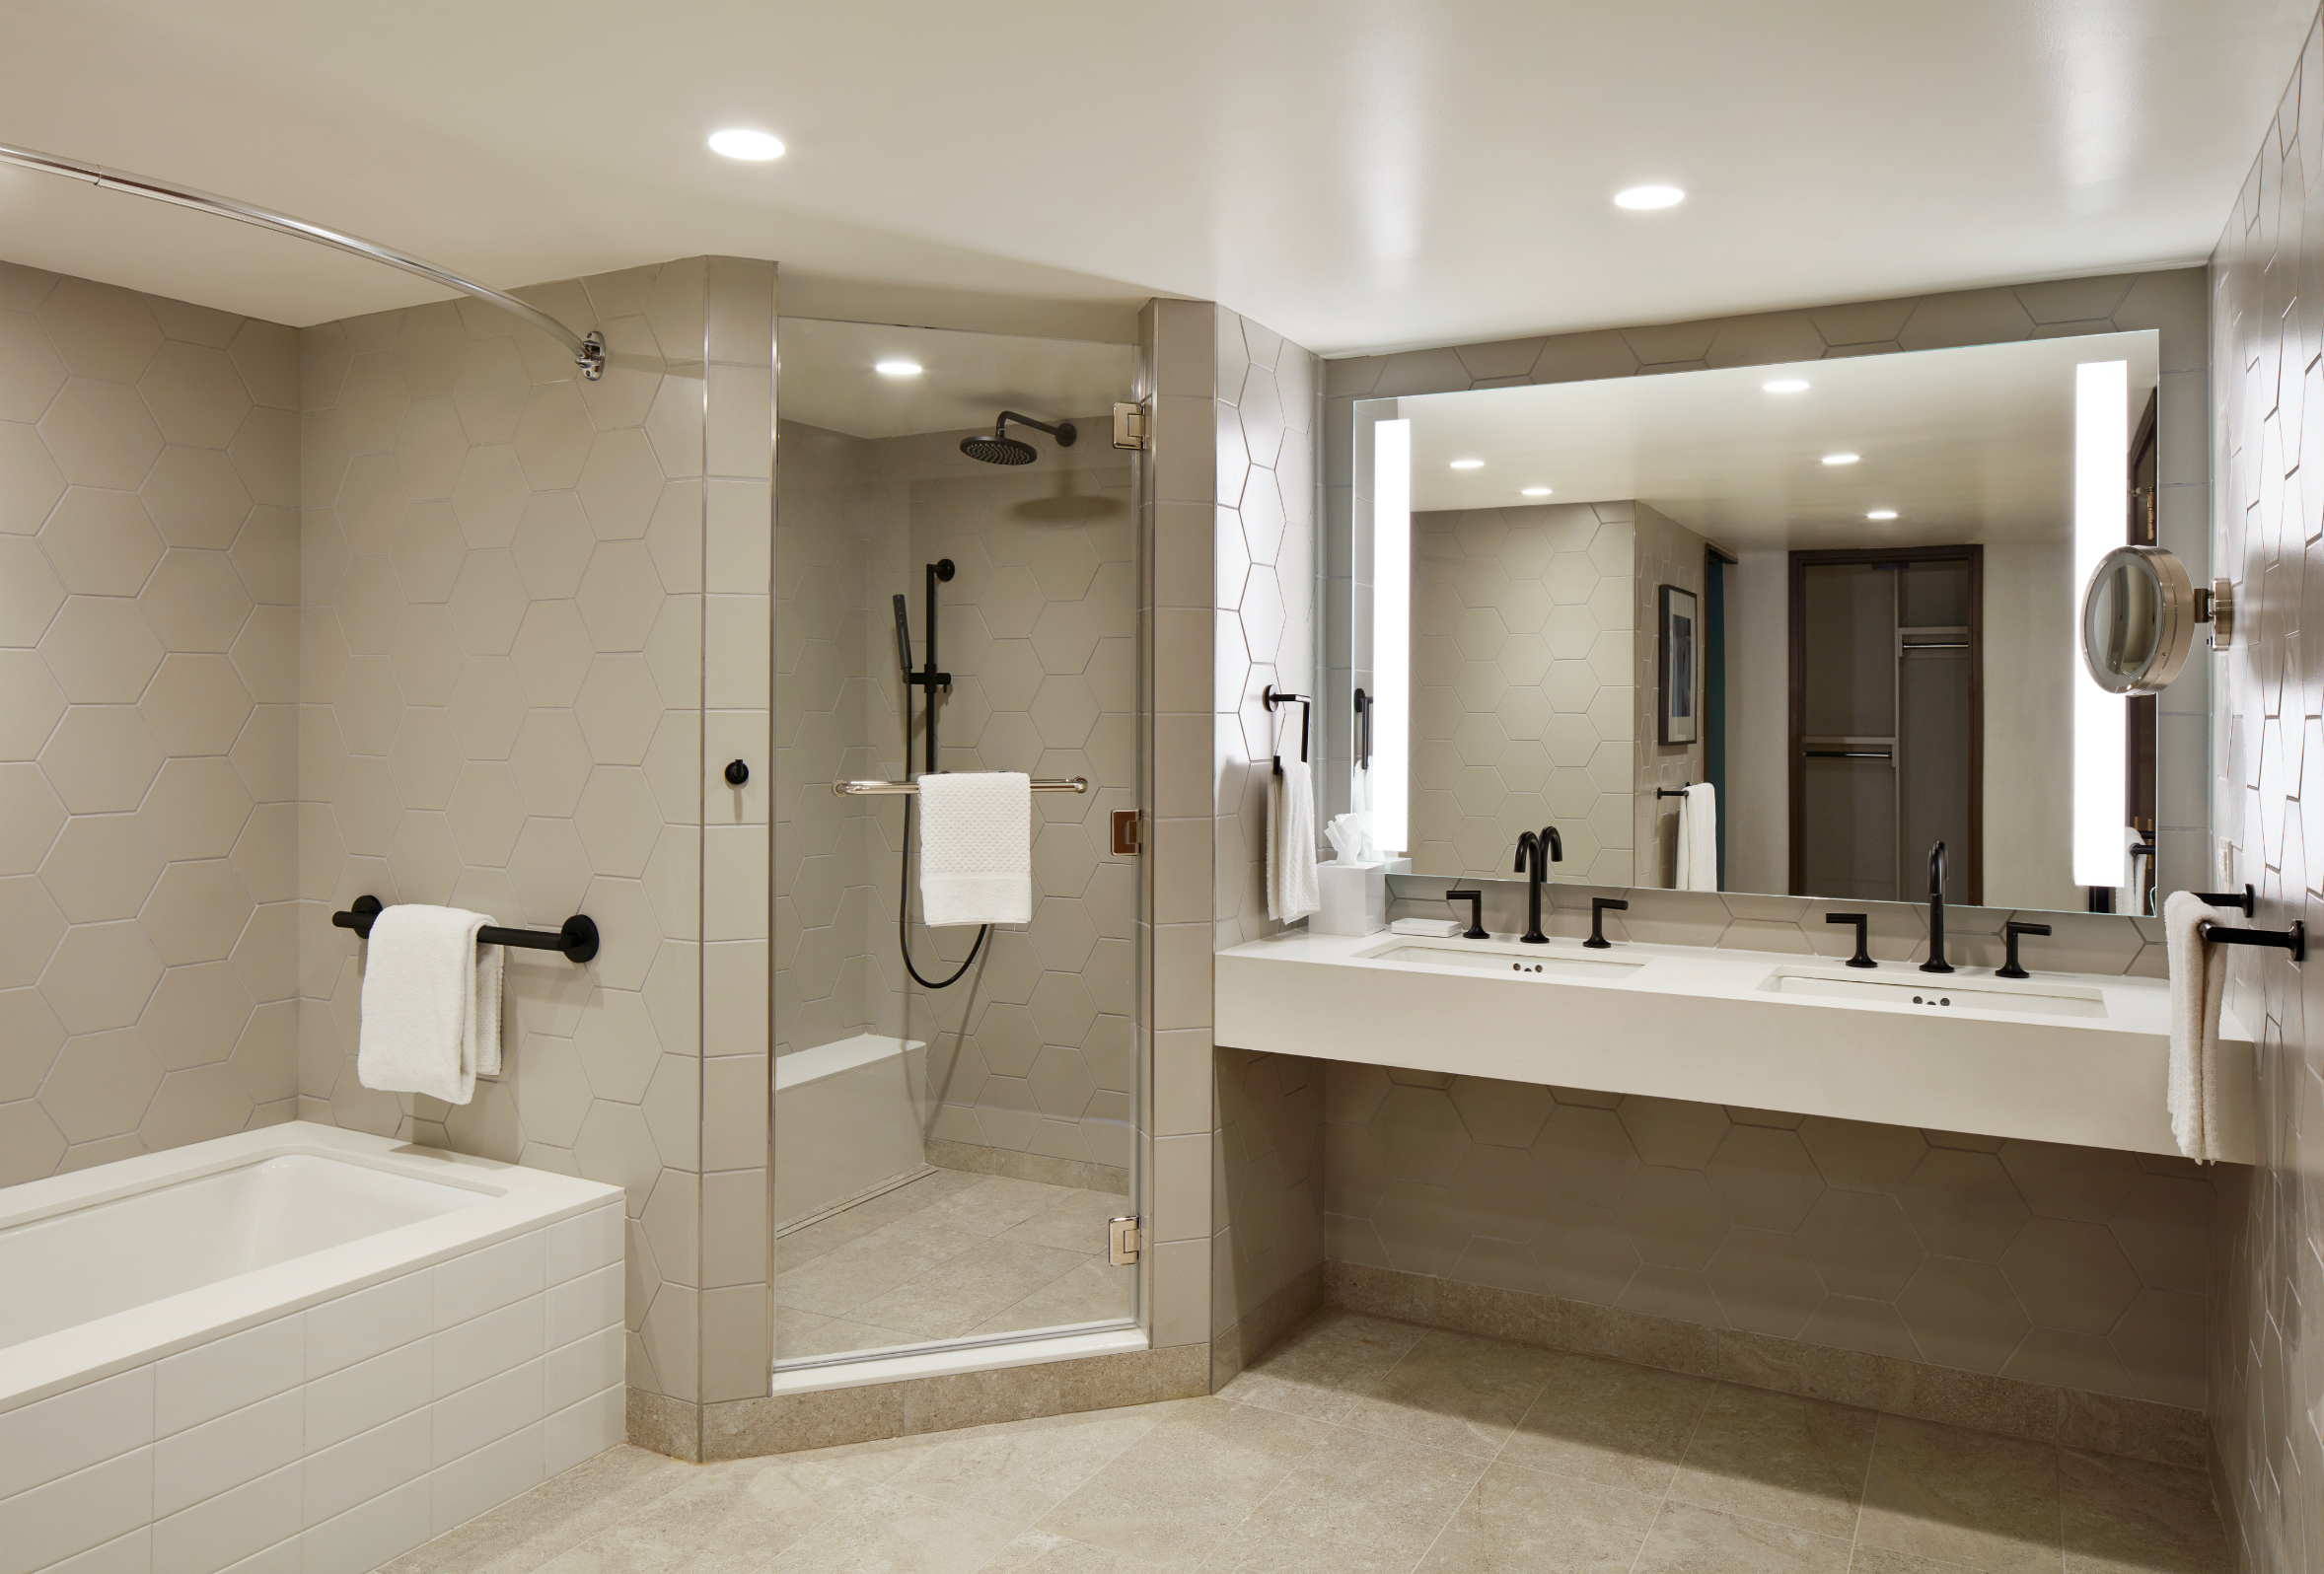 New York Hilton Midtown renovated bathroom